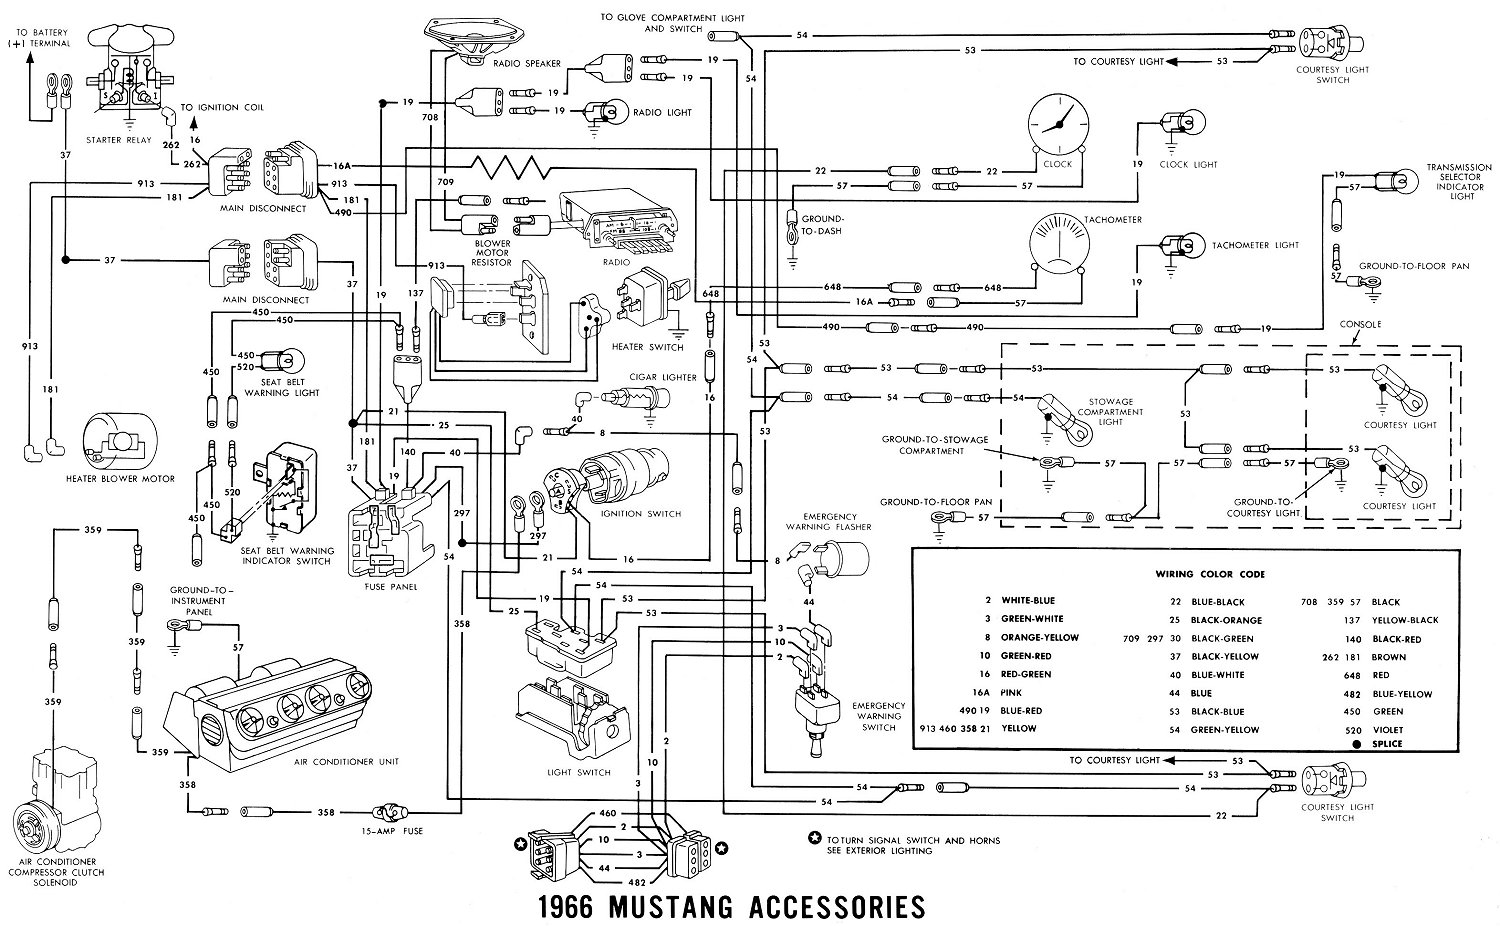 Mustang Painless Wiring Diagram | Wiring Diagram on jeep 4.0 vacuum diagram, distributor diagram, russell diagram, 1978 ford bronco dash diagram, animal diagram, tbi diagram, switch diagram, xenon diagram, vintage air diagram, egr diagram, circuit diagram, 3 wire alternator diagram, air lift diagram, small diagram, msd diagram, block diagram, jet diagram, basic car diagram, math diagram, painless fuse block,